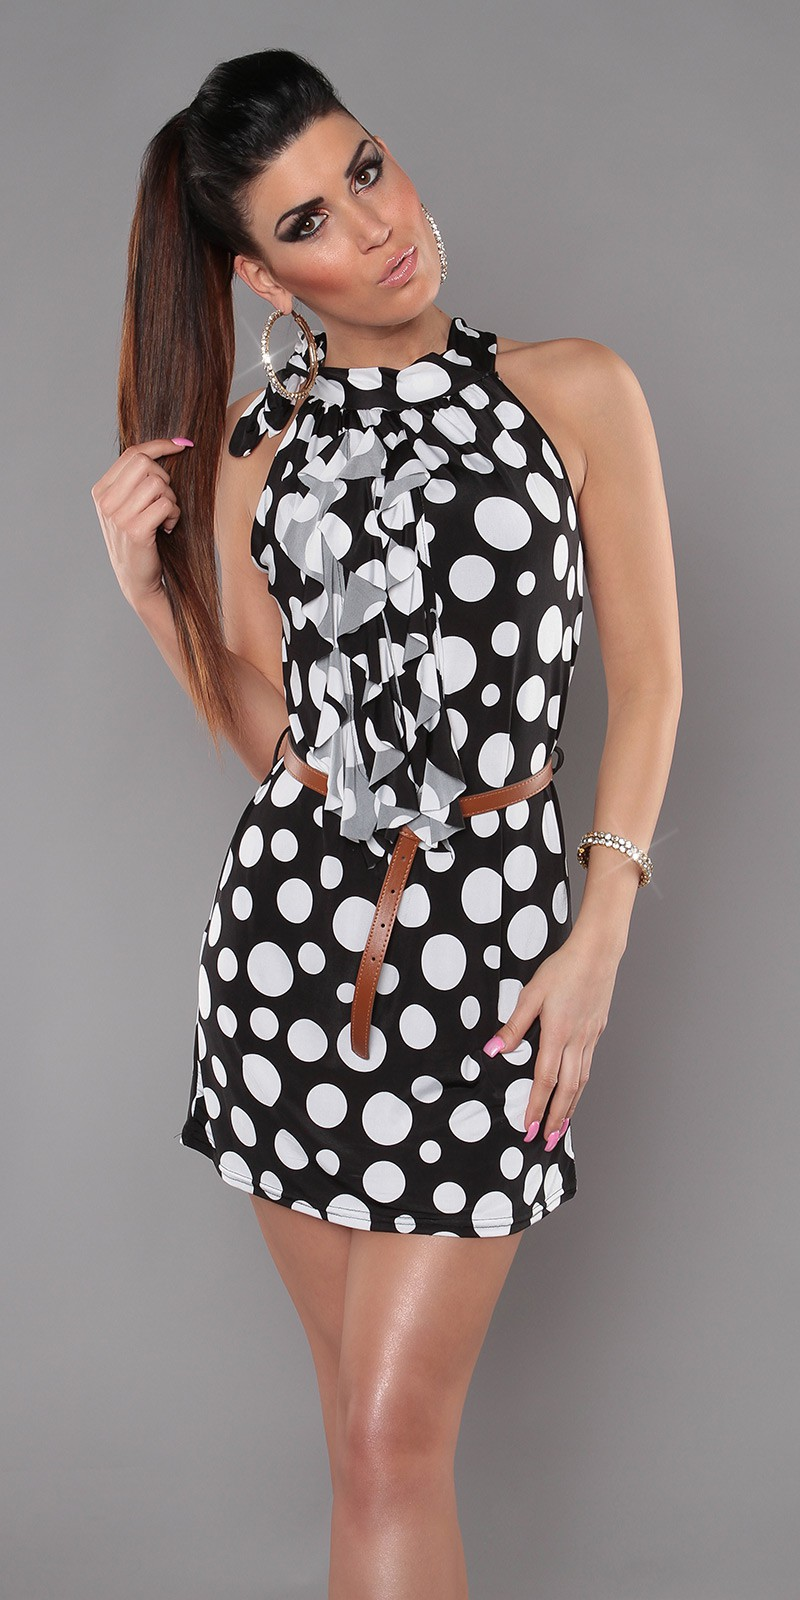 Black Sleeveless Ruffled Polka Dot Belted Dress